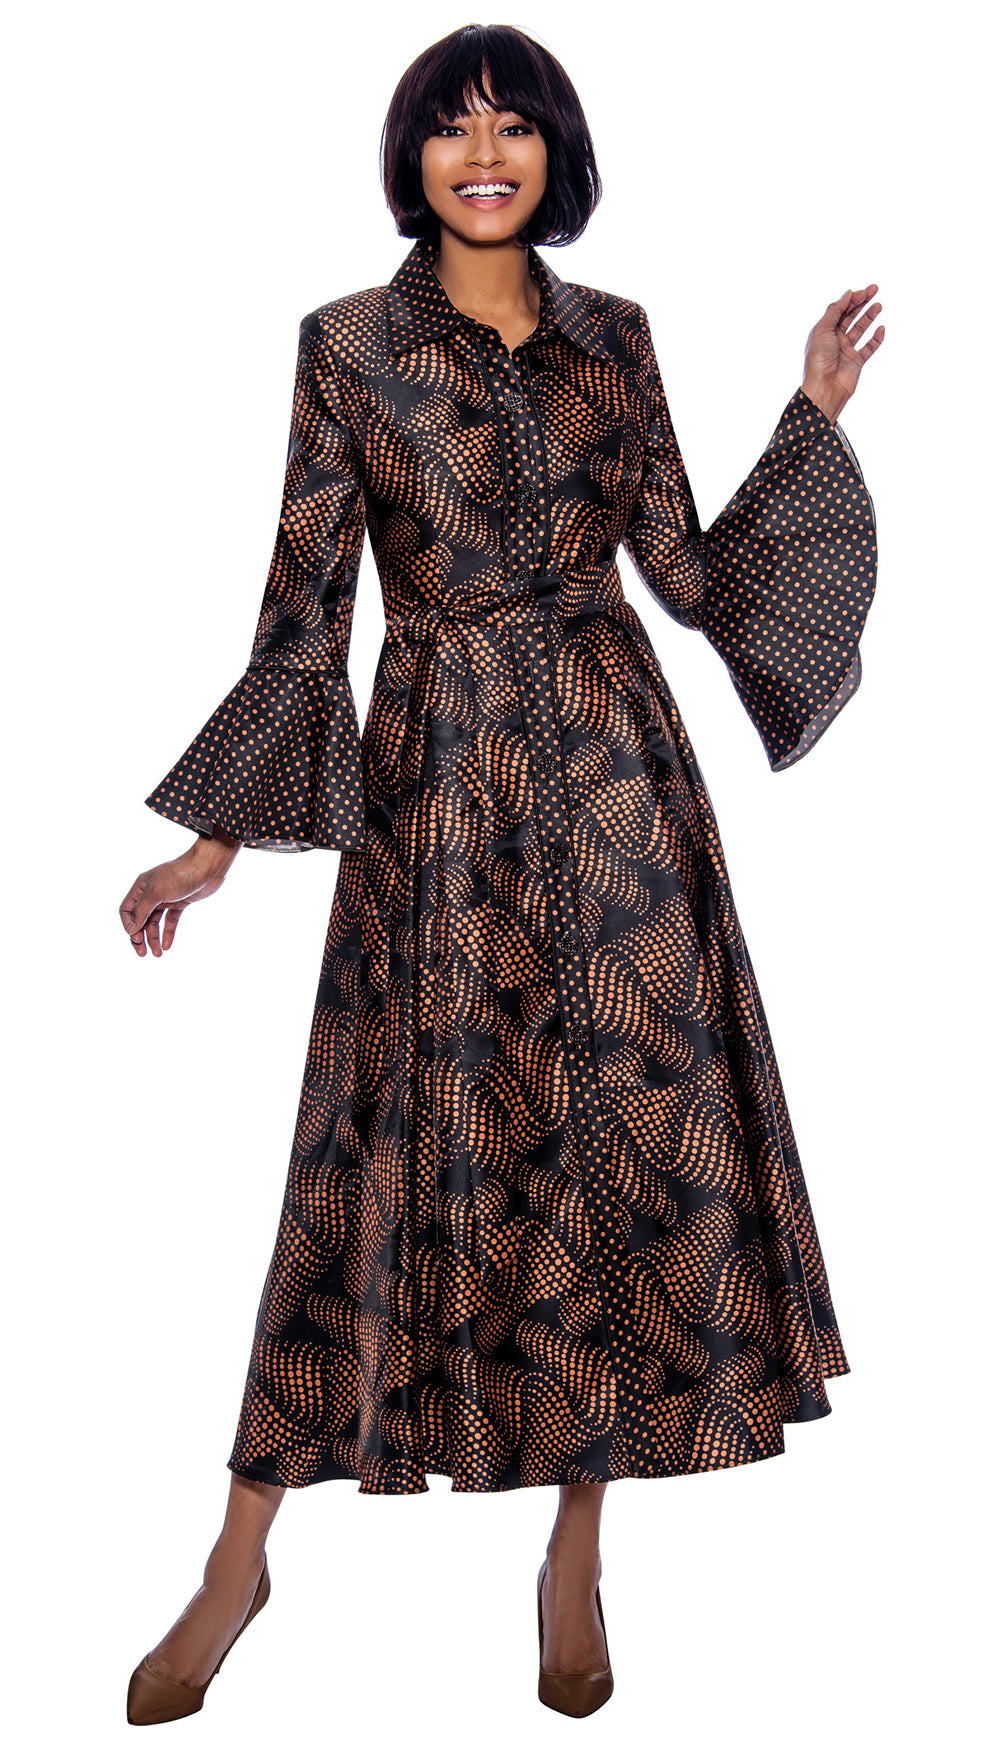 Terramina Dress 7858C-Bronze - Church Suits For Less